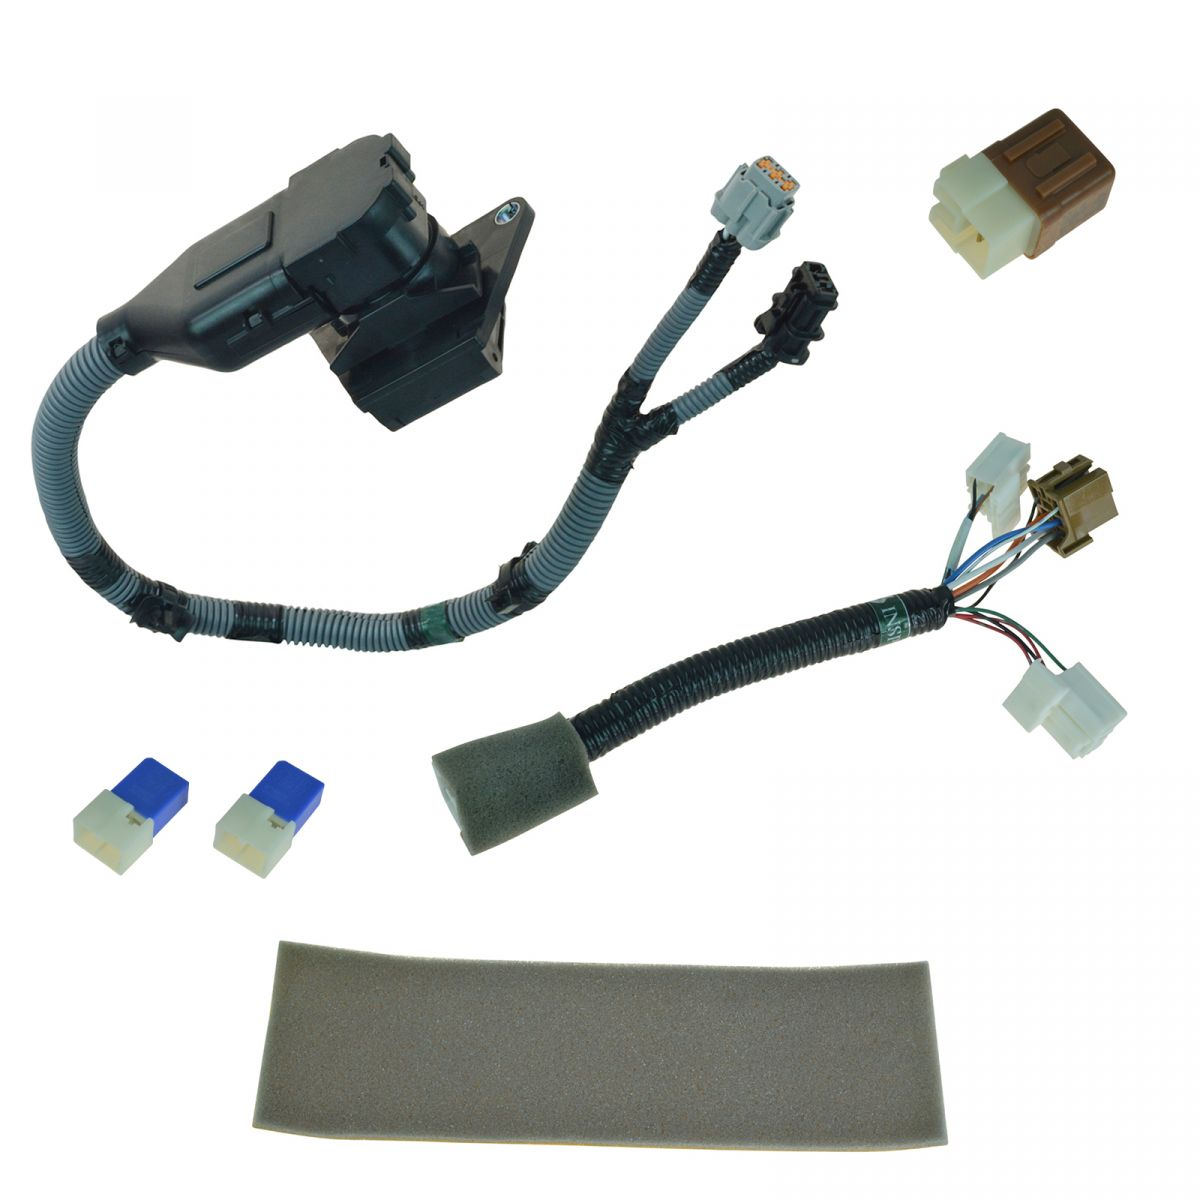 hight resolution of oem 999t8br020 complete 7 pin plug play tow harness kit for nissan frontier